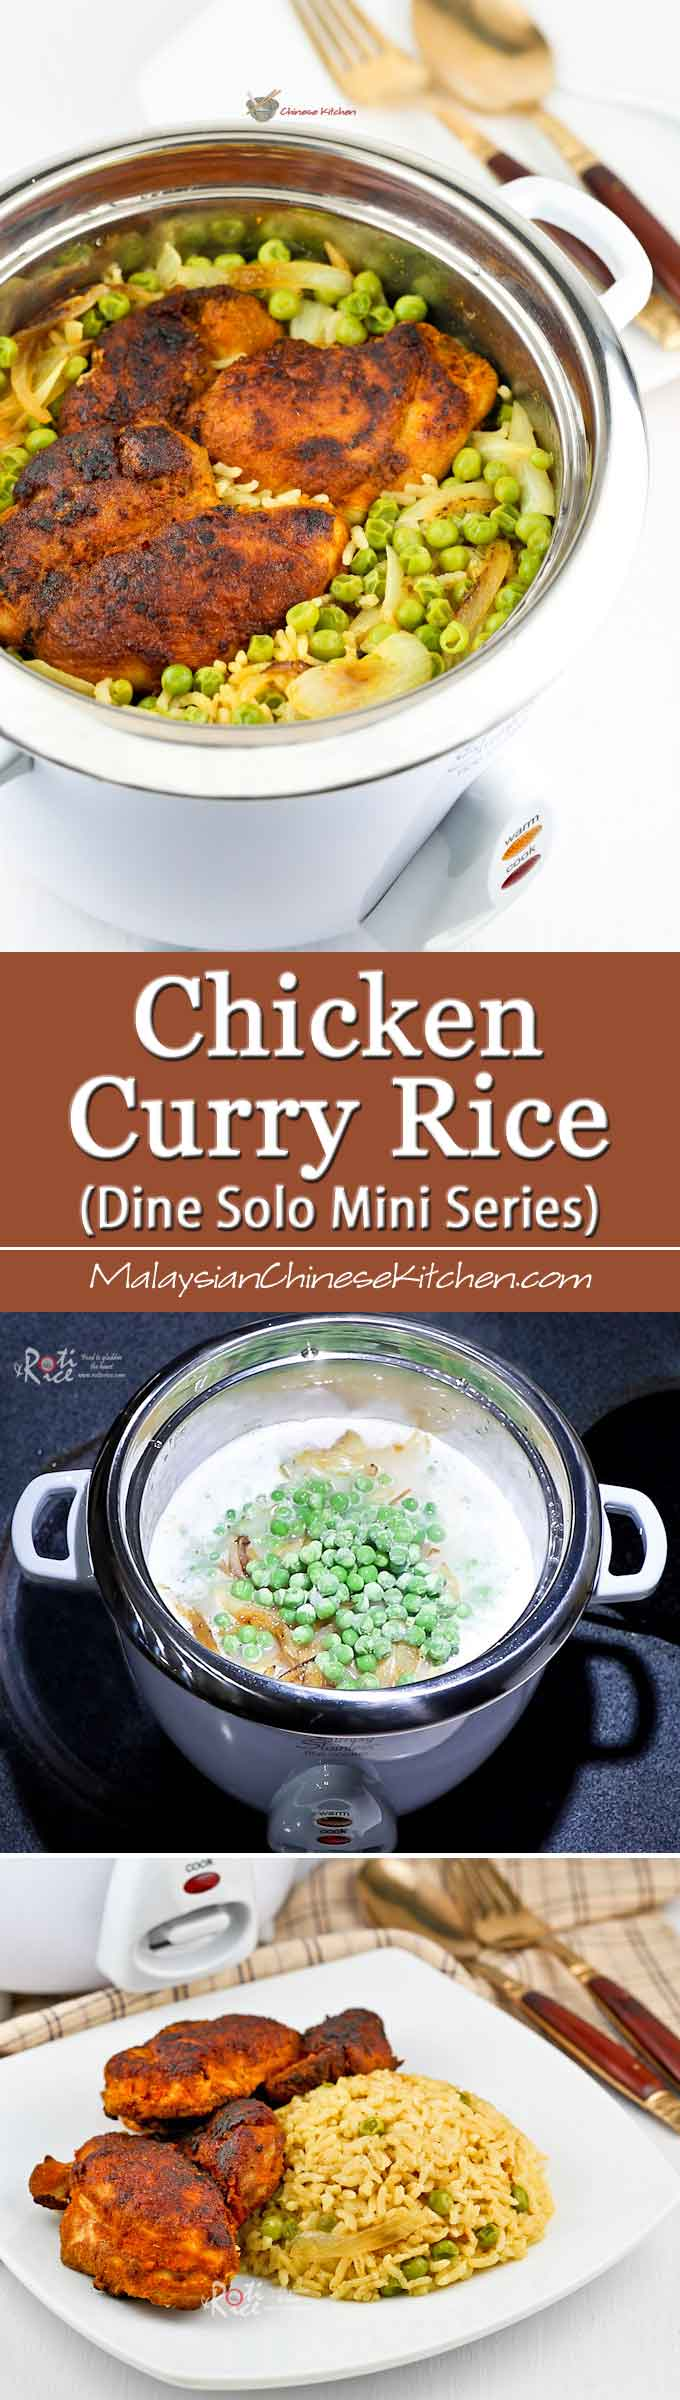 Easy Chicken Curry Rice with pan fried chicken and rice cooked in coconut milk. Final cooking completed in a rice cooker requiring minimum monitoring. | MalaysianChineseKitchen.com